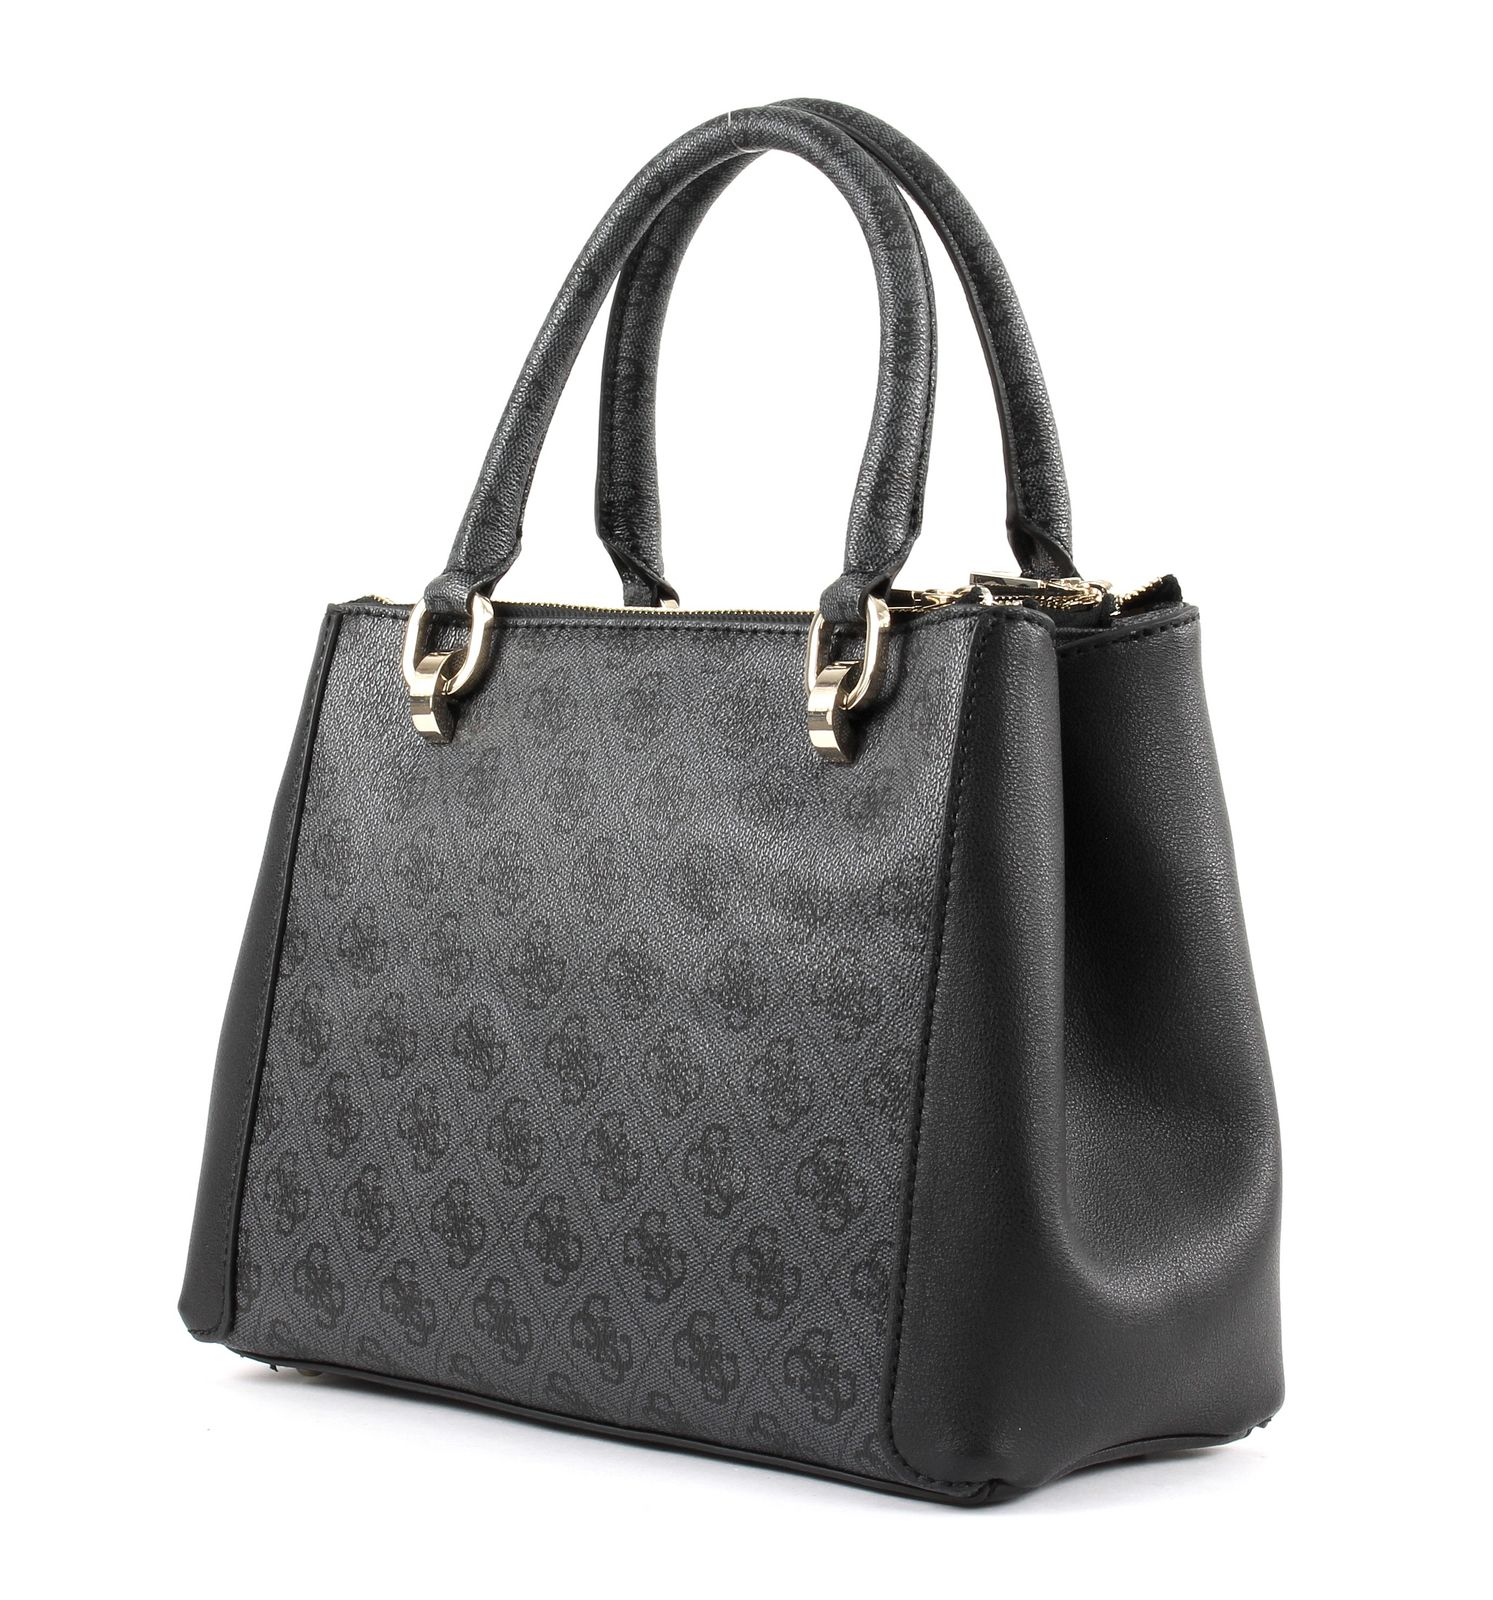 38125272f855e ... To CloseGUESS Bluebelle Status Satchel Coal   145